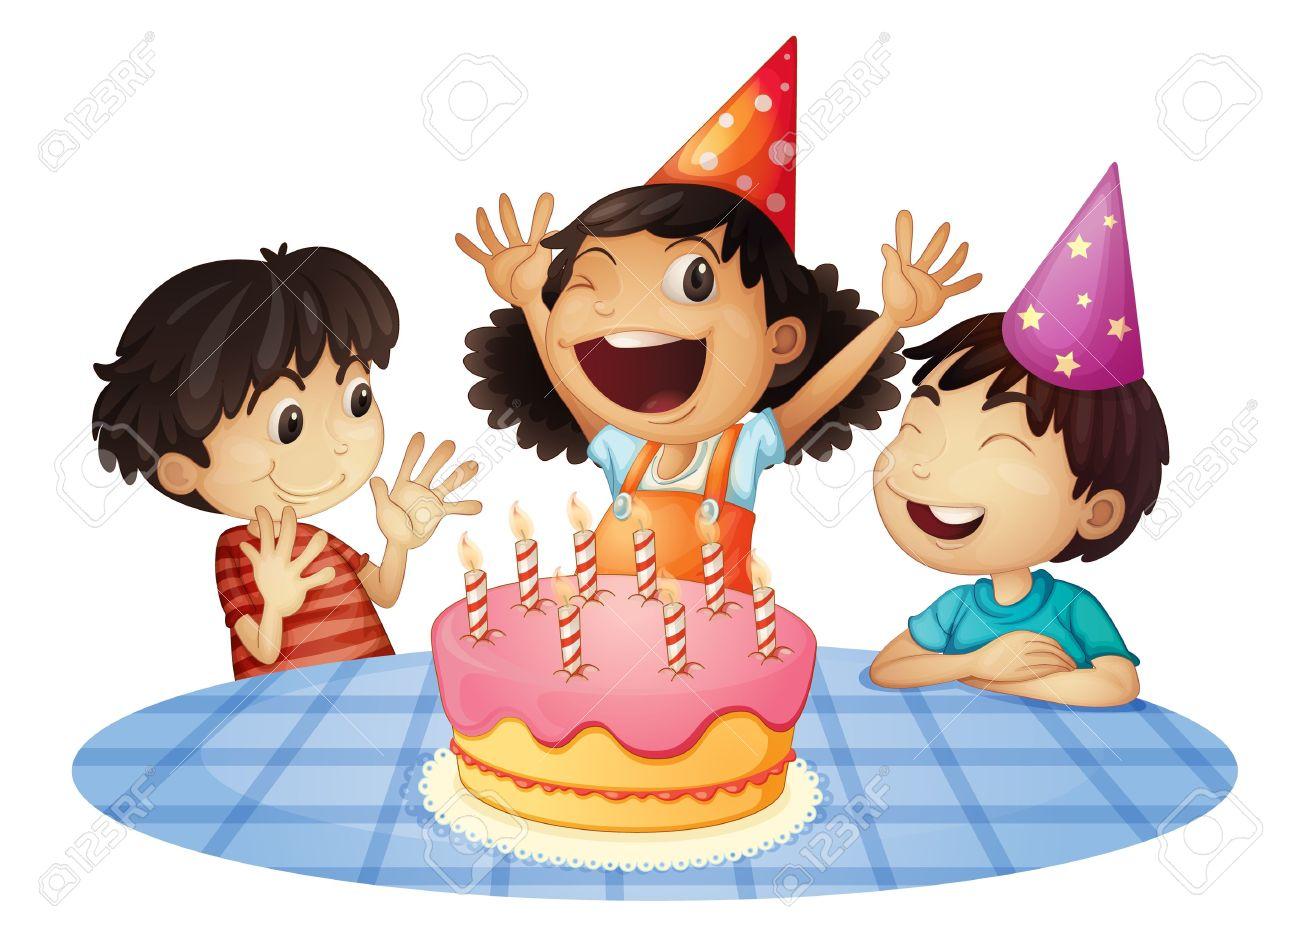 Birthday party clipart free 6 » Clipart Station.